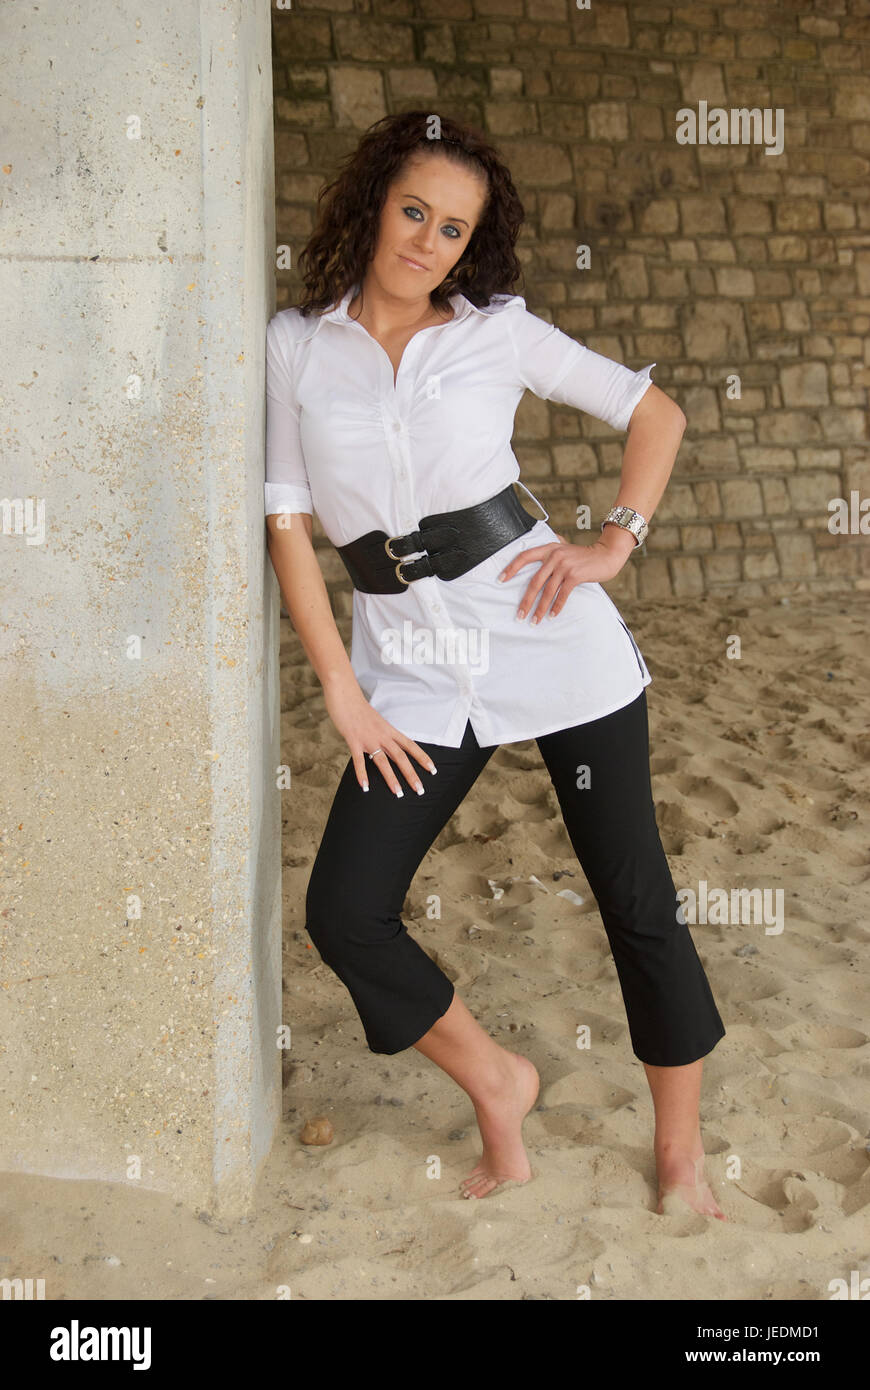 Pretty dark haired girl outdoors wearing a black and white outfit - Stock Image